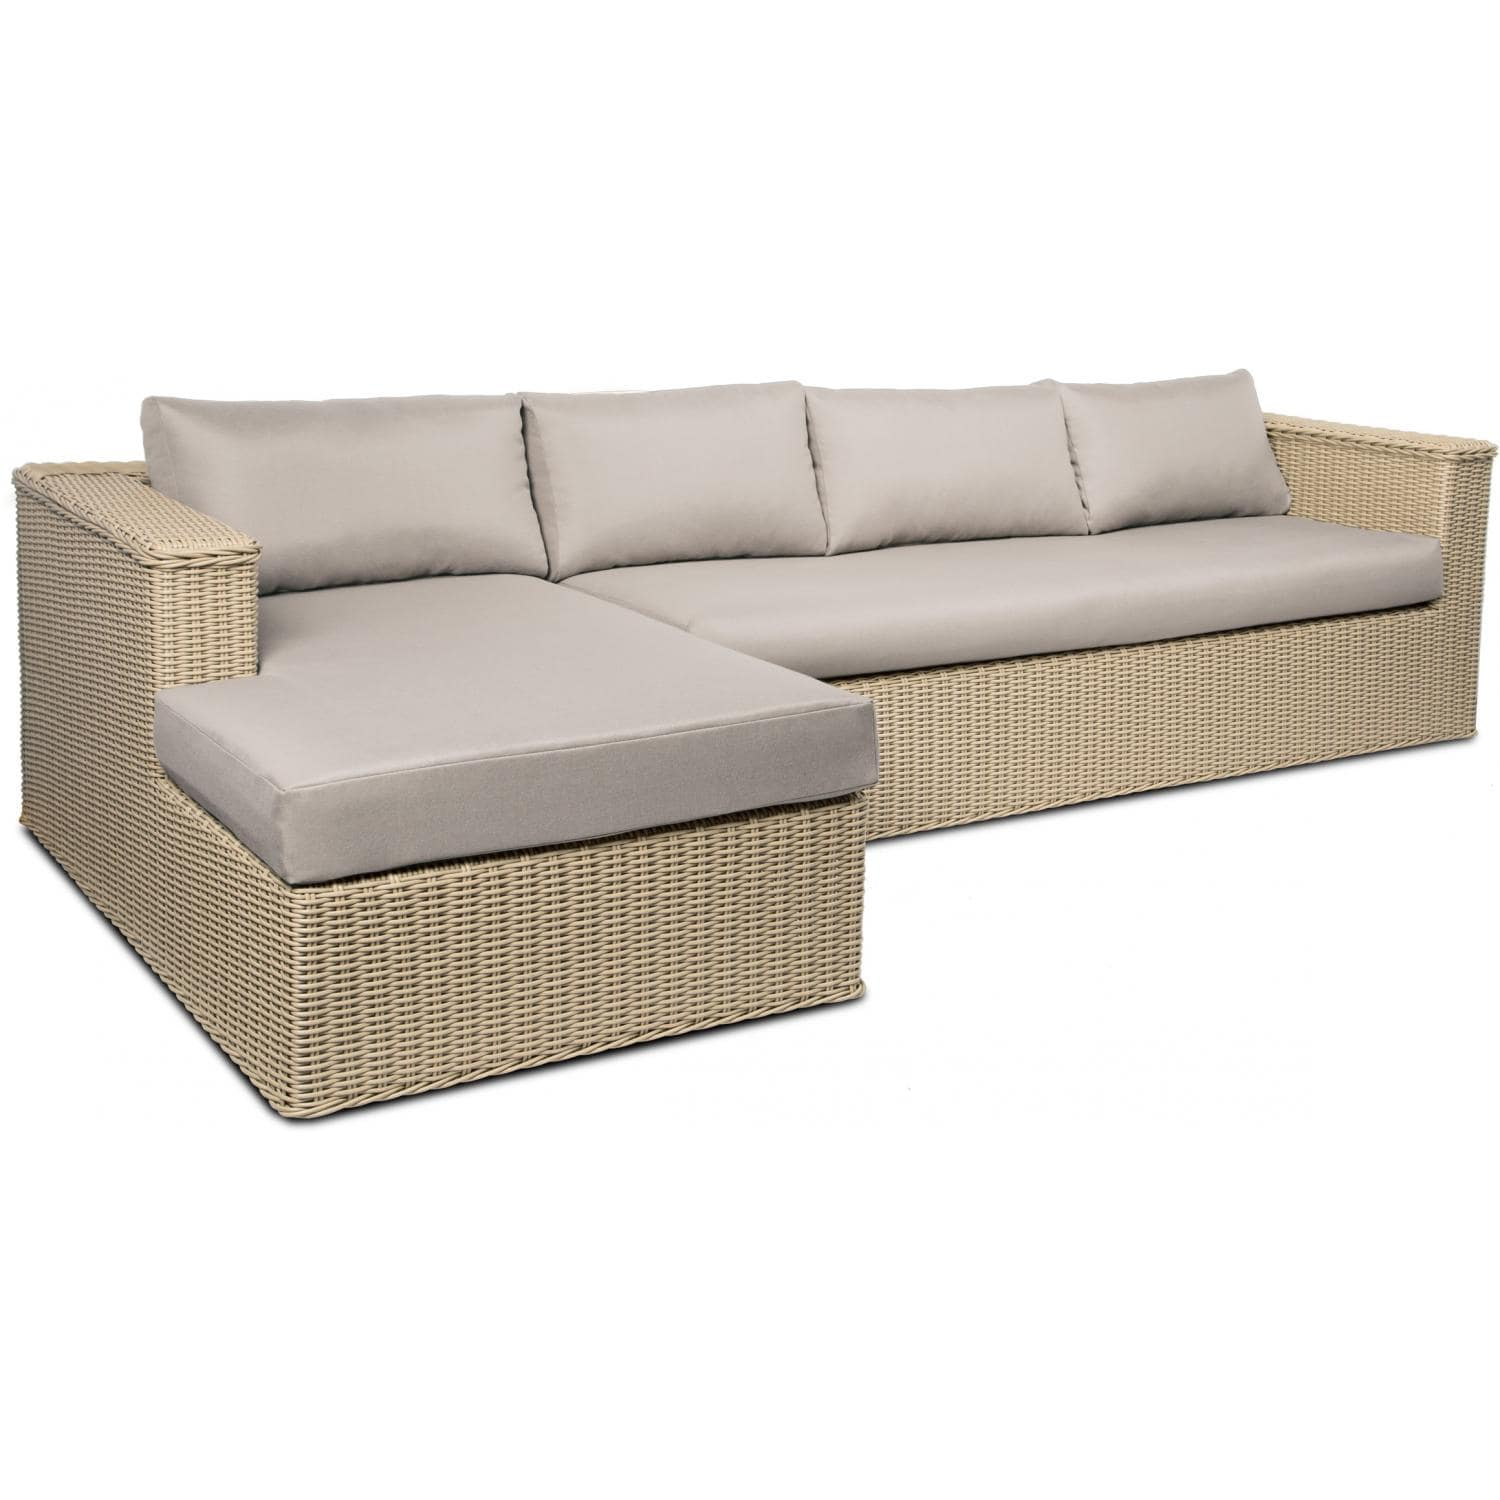 real flame mezzo outdoor sectional sofa main